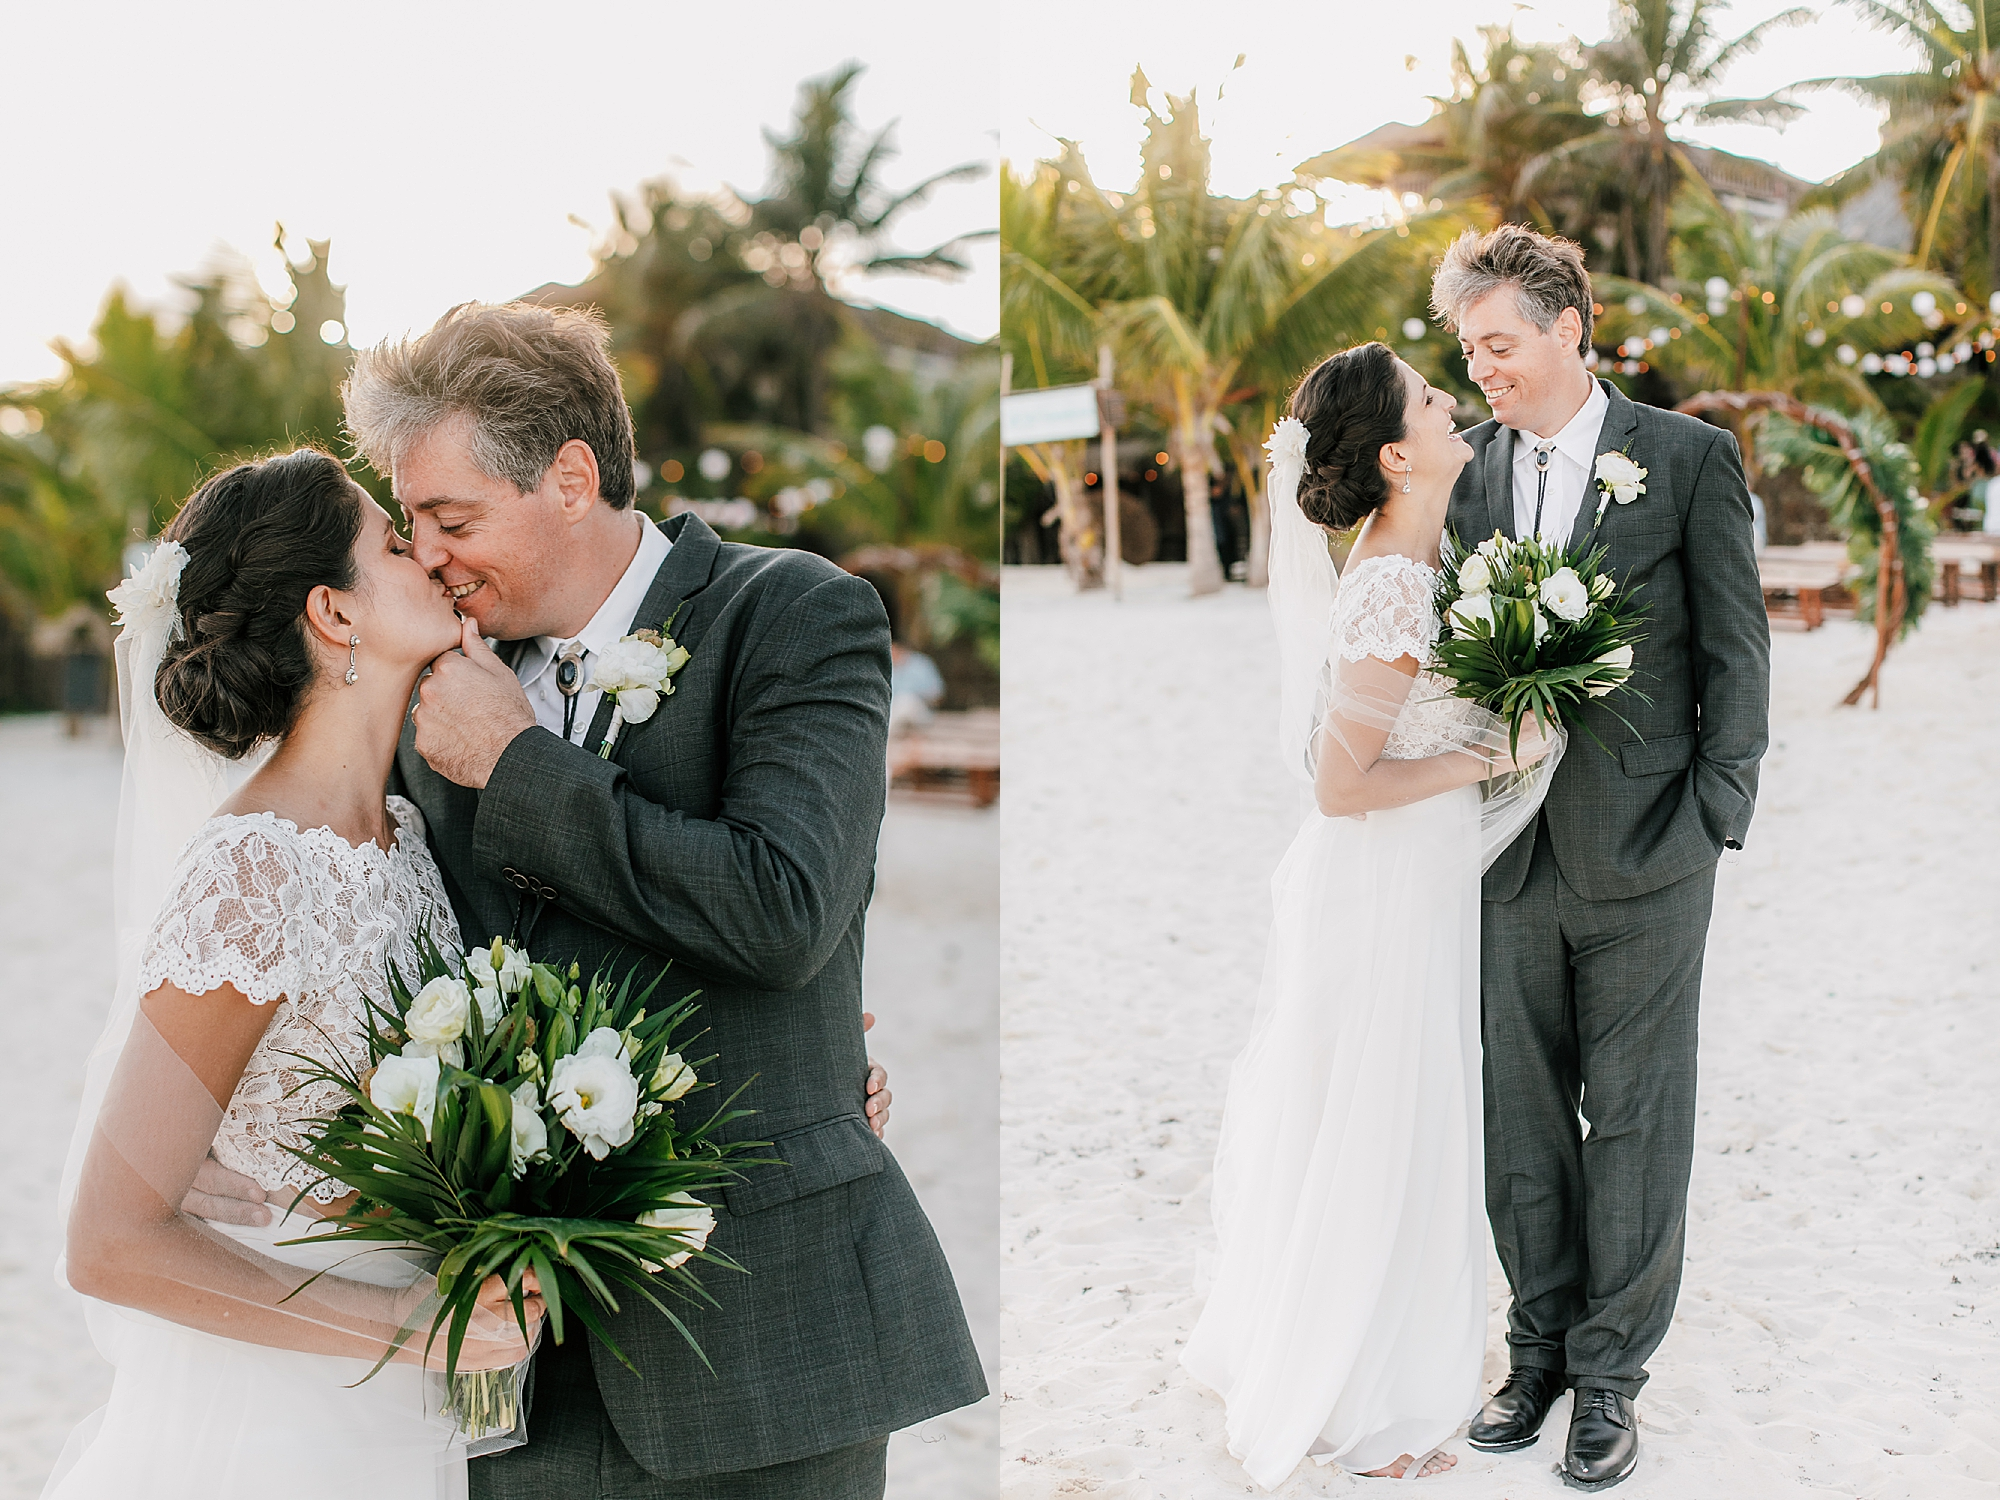 Stylish and Candid Destination Film Wedding Photography in Tulum Mexico by Magdalena Studios 0018